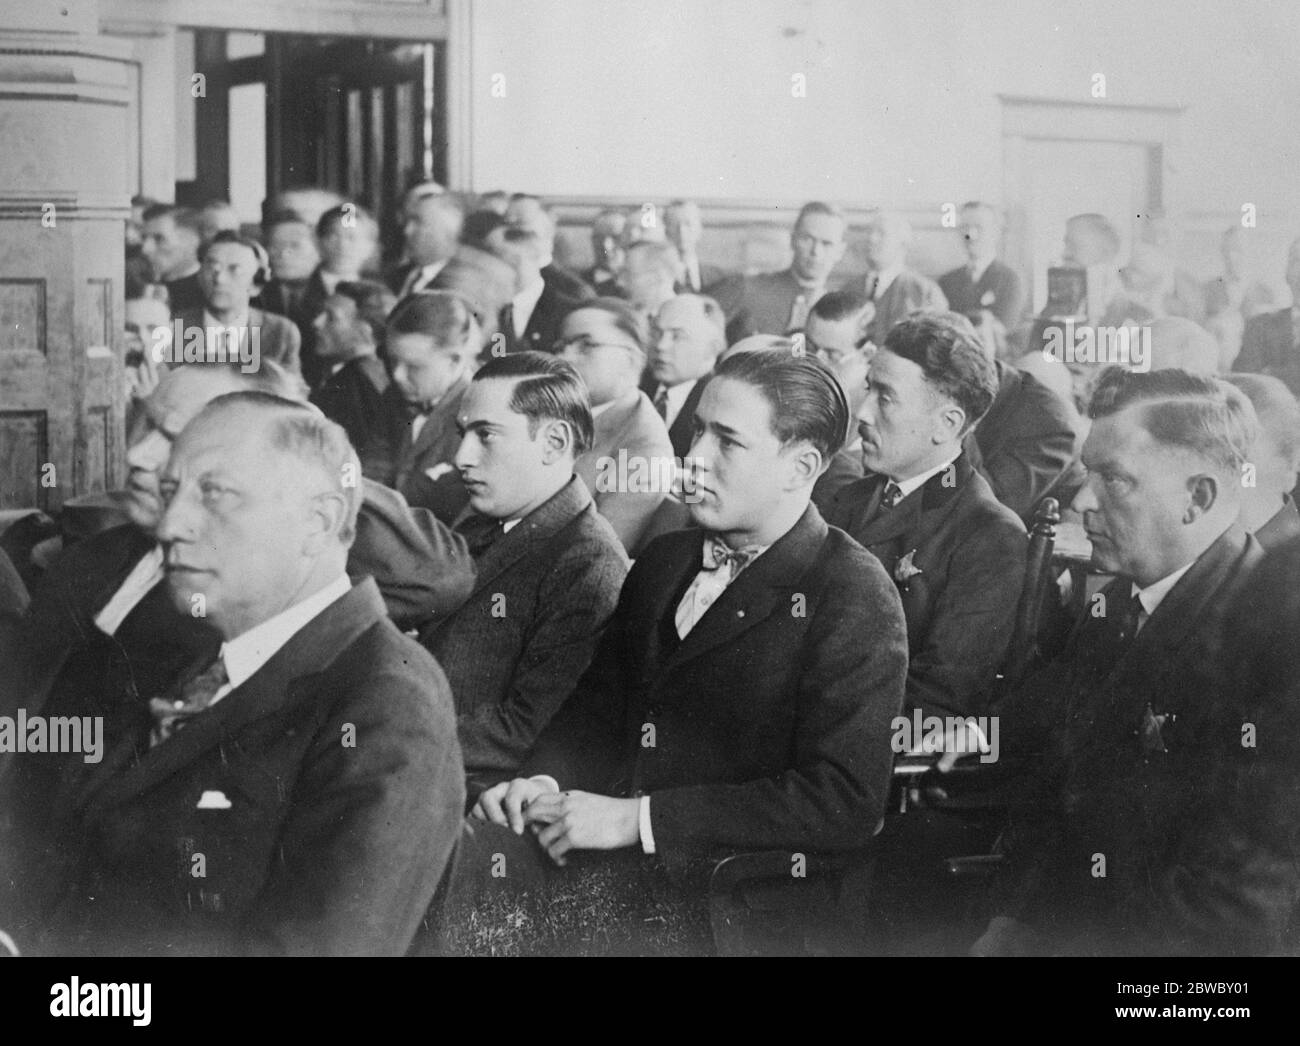 Leopold and Loeb murder court scenes as sentence is passed . Hundreds of people surrounded the Criminal court building in Chicago when Judge Cavalry pronounced his sentence of 99 years and life upon Nathan Leopold Jnr , and Richard Loeb for the killing of Bobbie Franks . Leopold and Loeb photographed while the sentence was being pronounced . 20 September 1924 Stock Photo